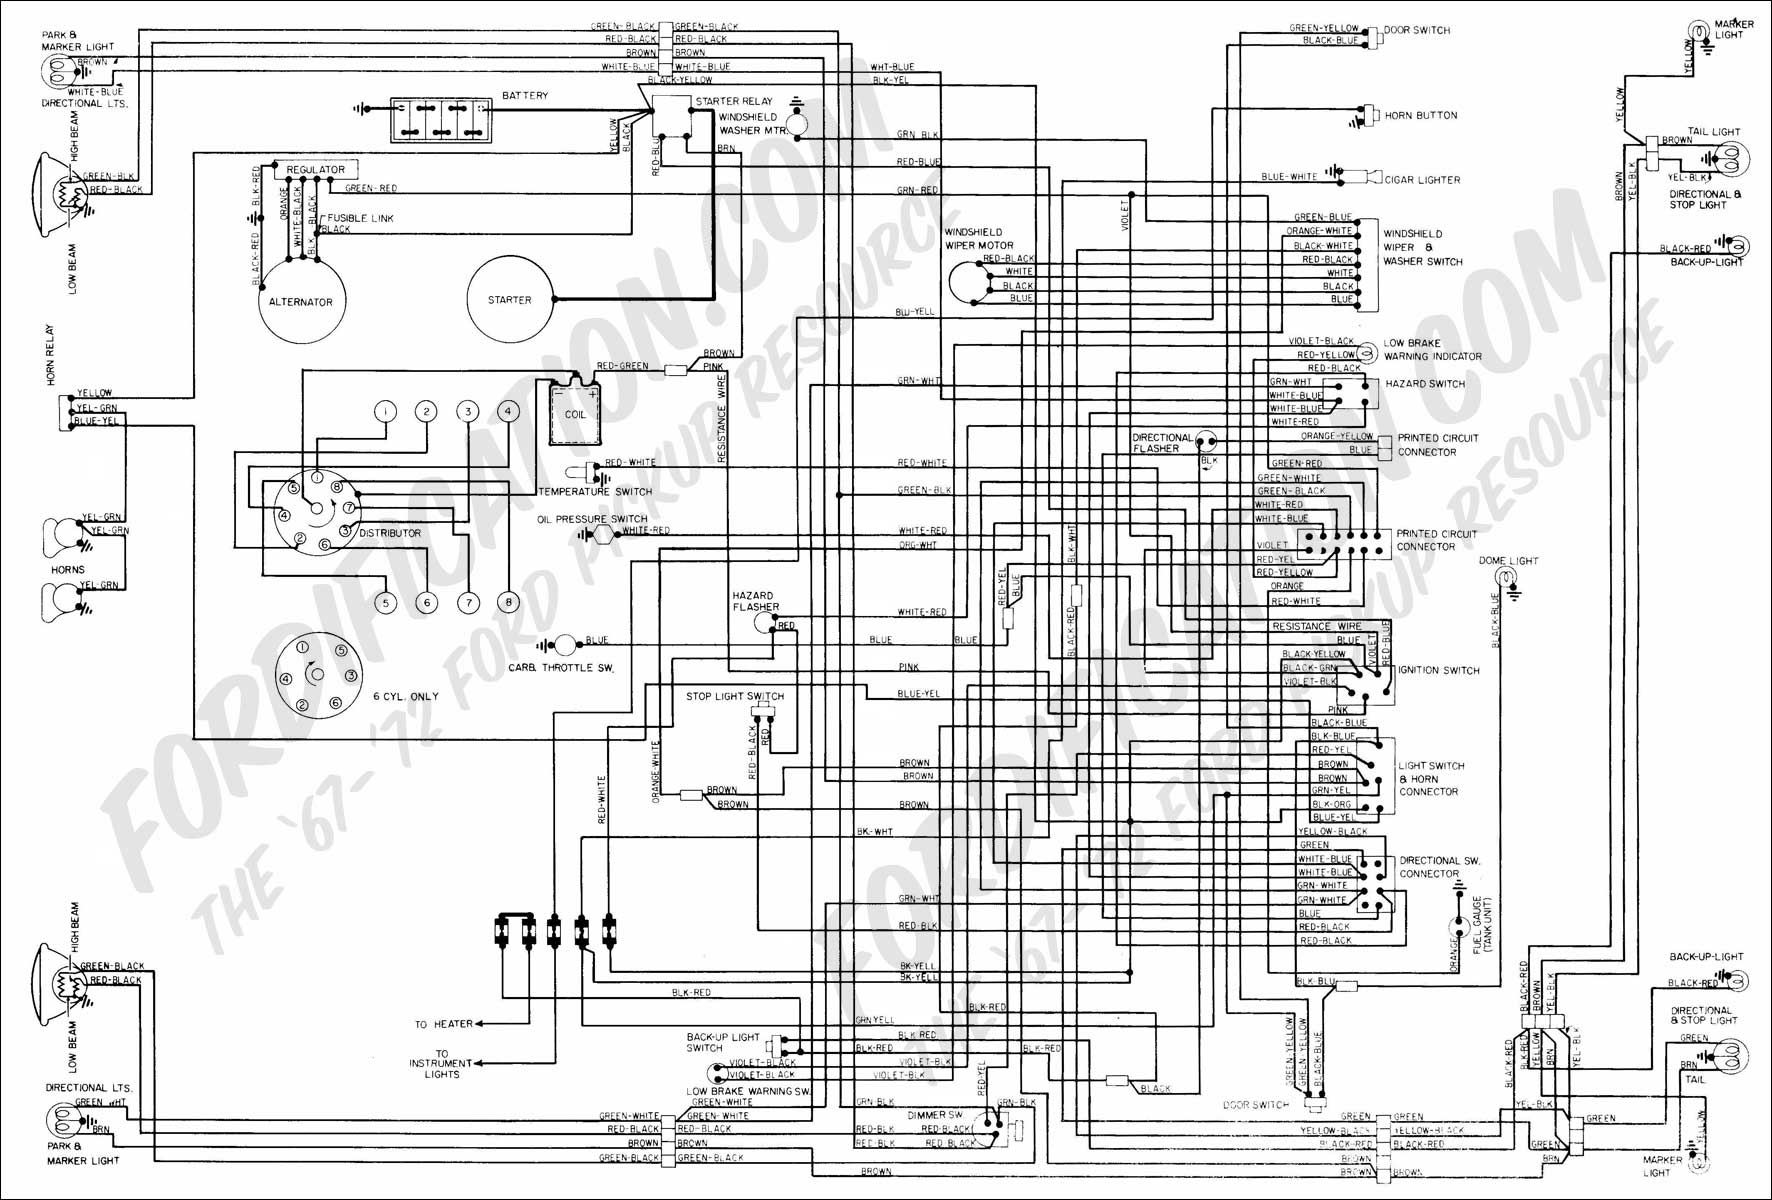 hight resolution of 06 f250 wire diagram power window and lock wiring library 2005 chrysler 300 wiring diagram 06